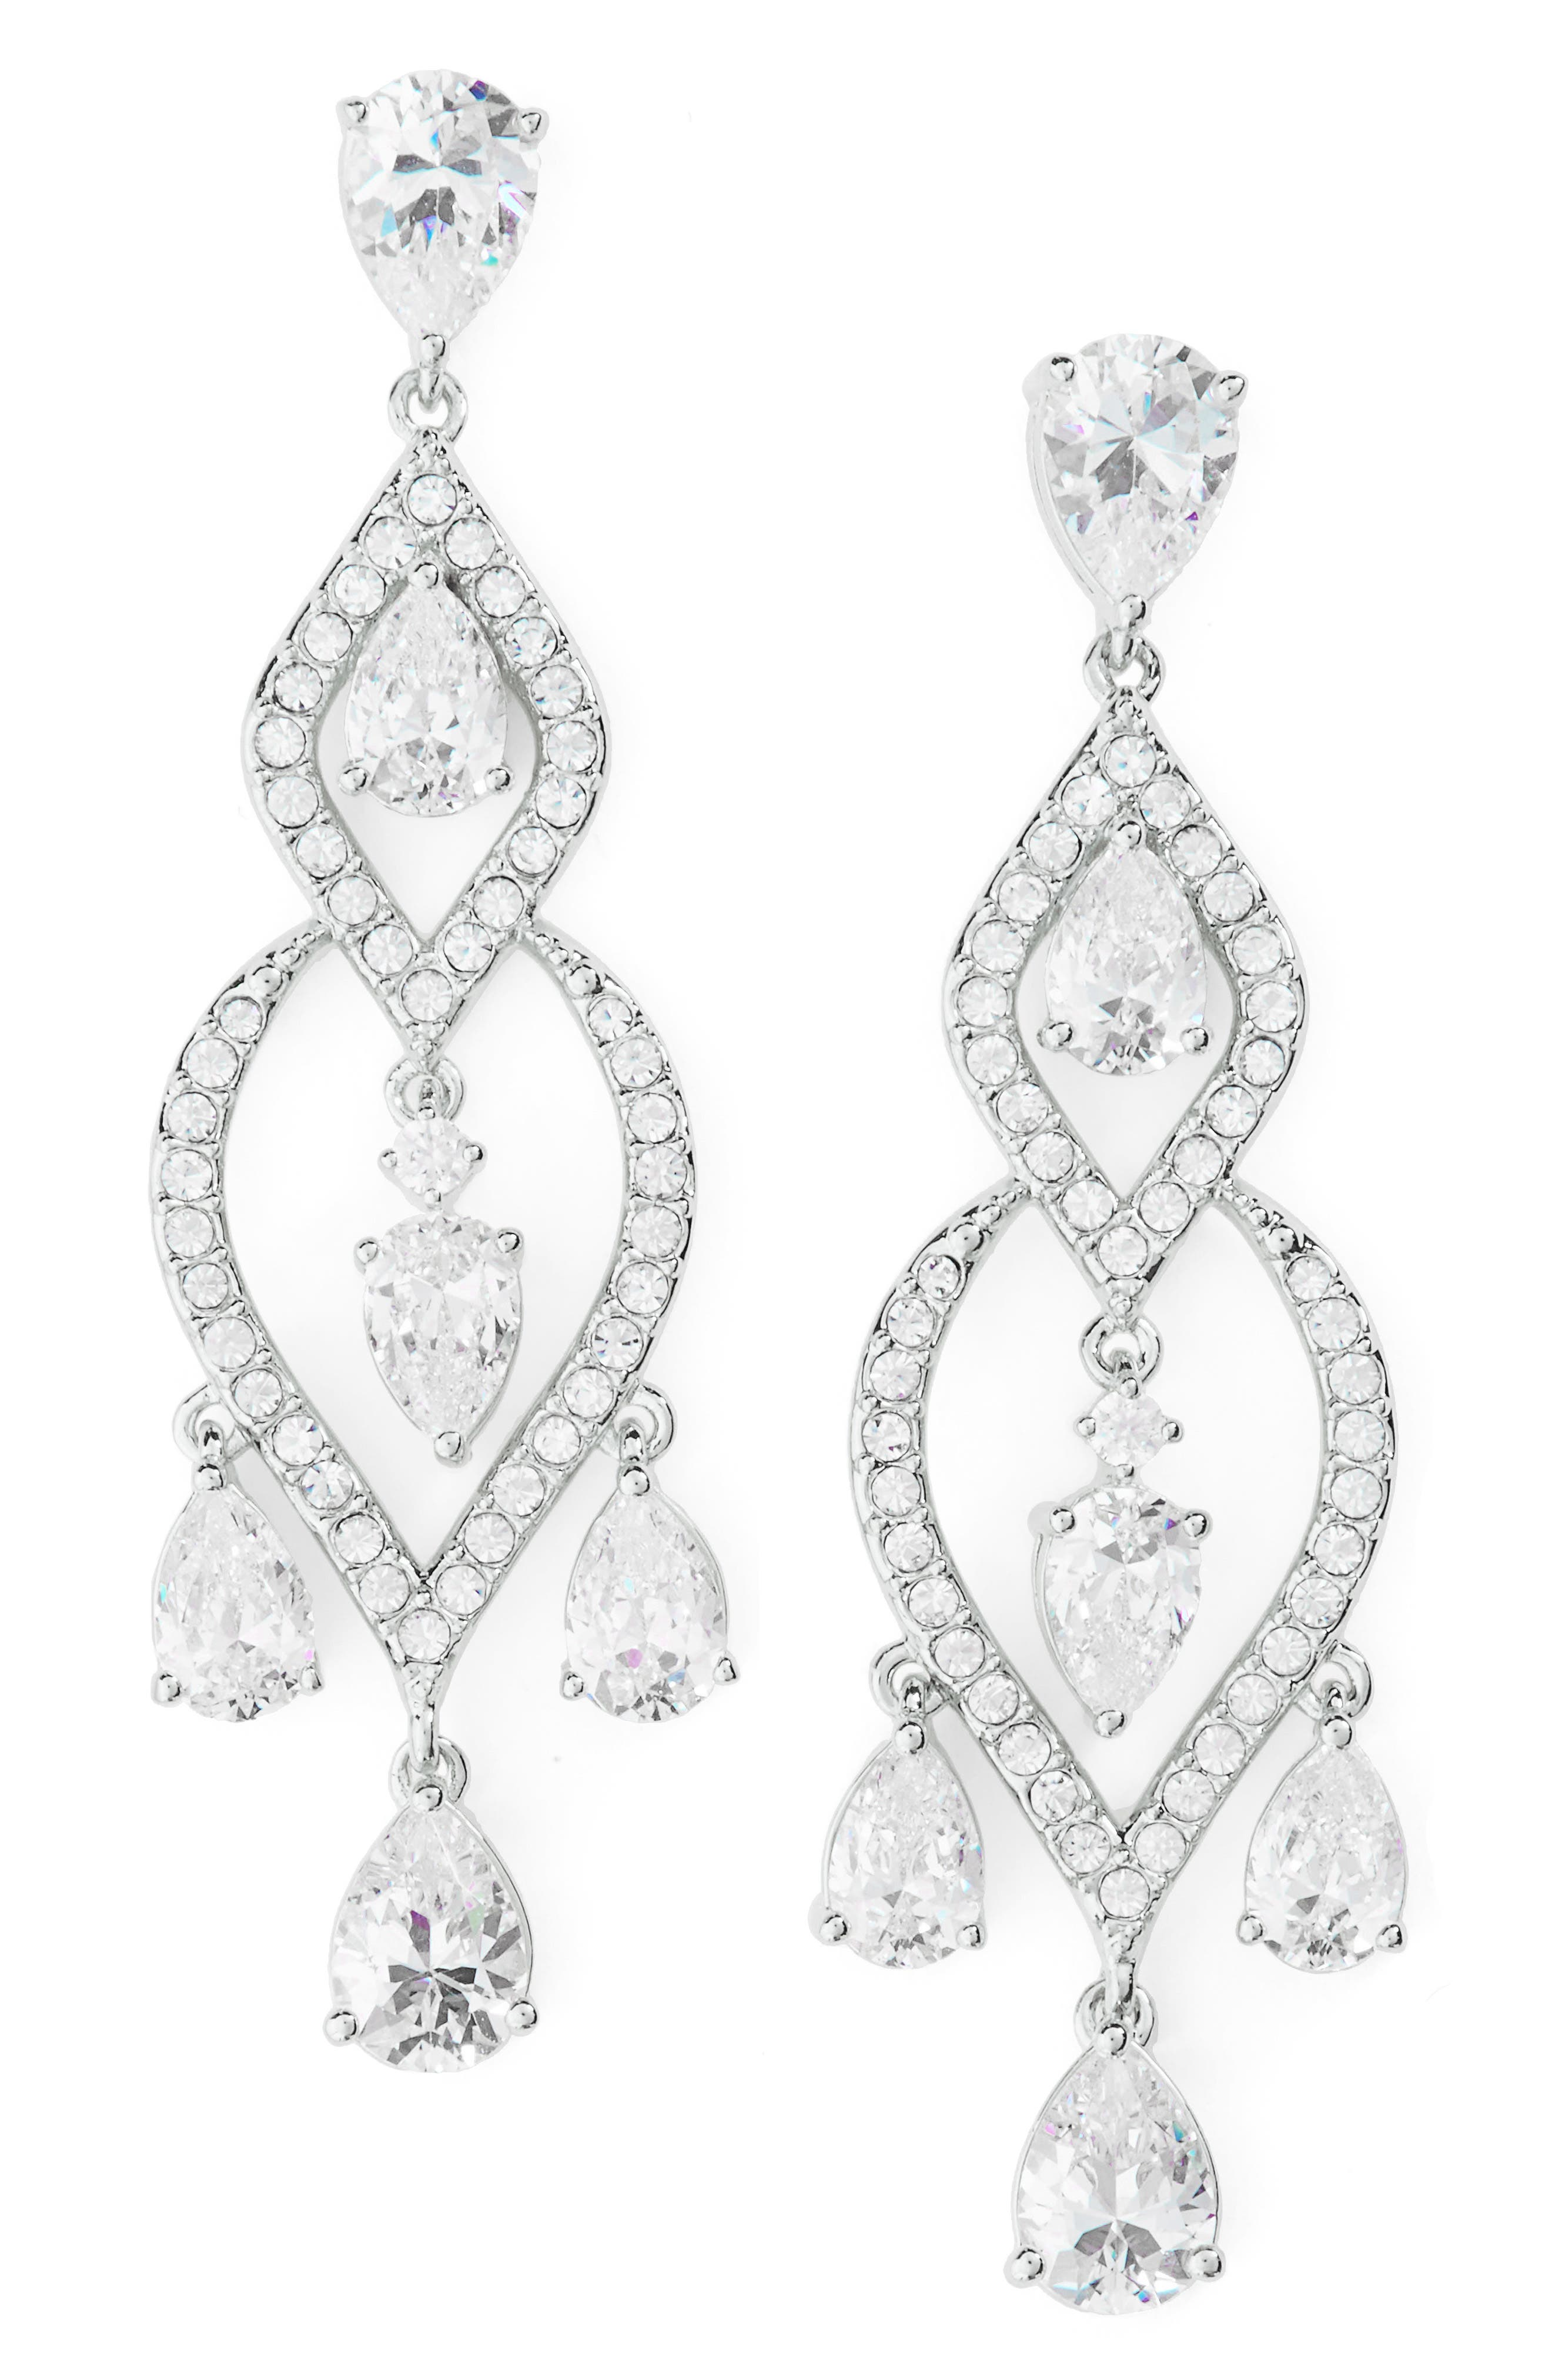 Legacy Chandelier Earrings,                             Main thumbnail 1, color,                             Silver